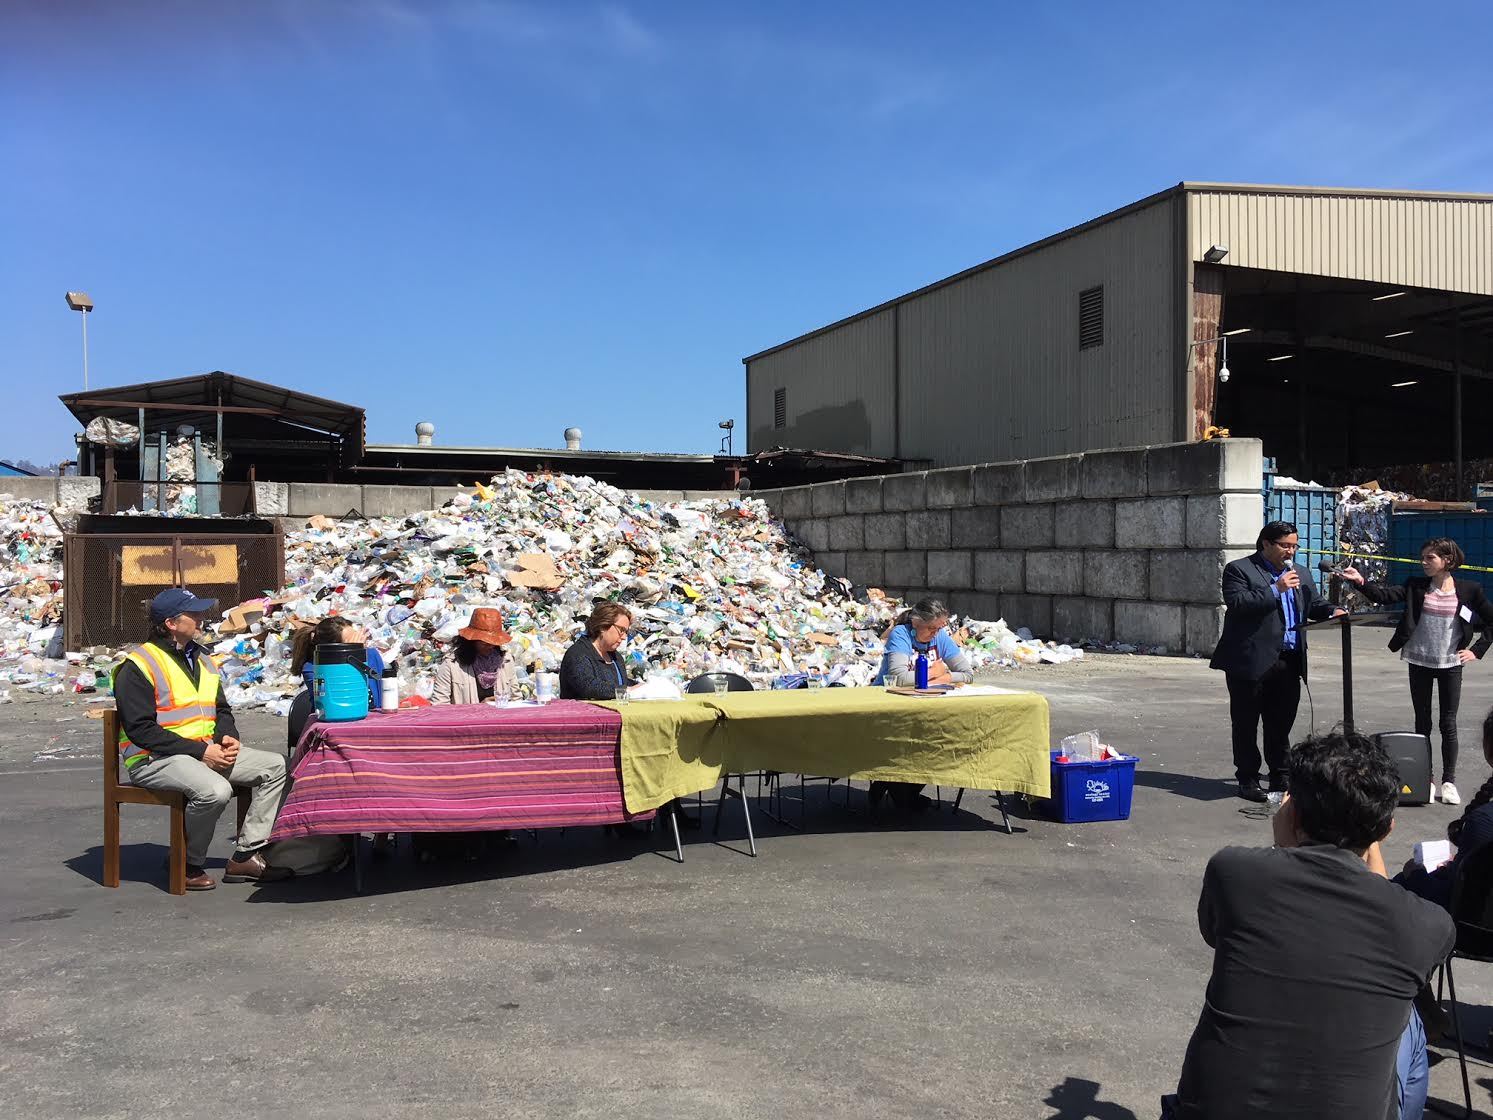 Ecology Center held the press conference in front of one day's collection of trash.